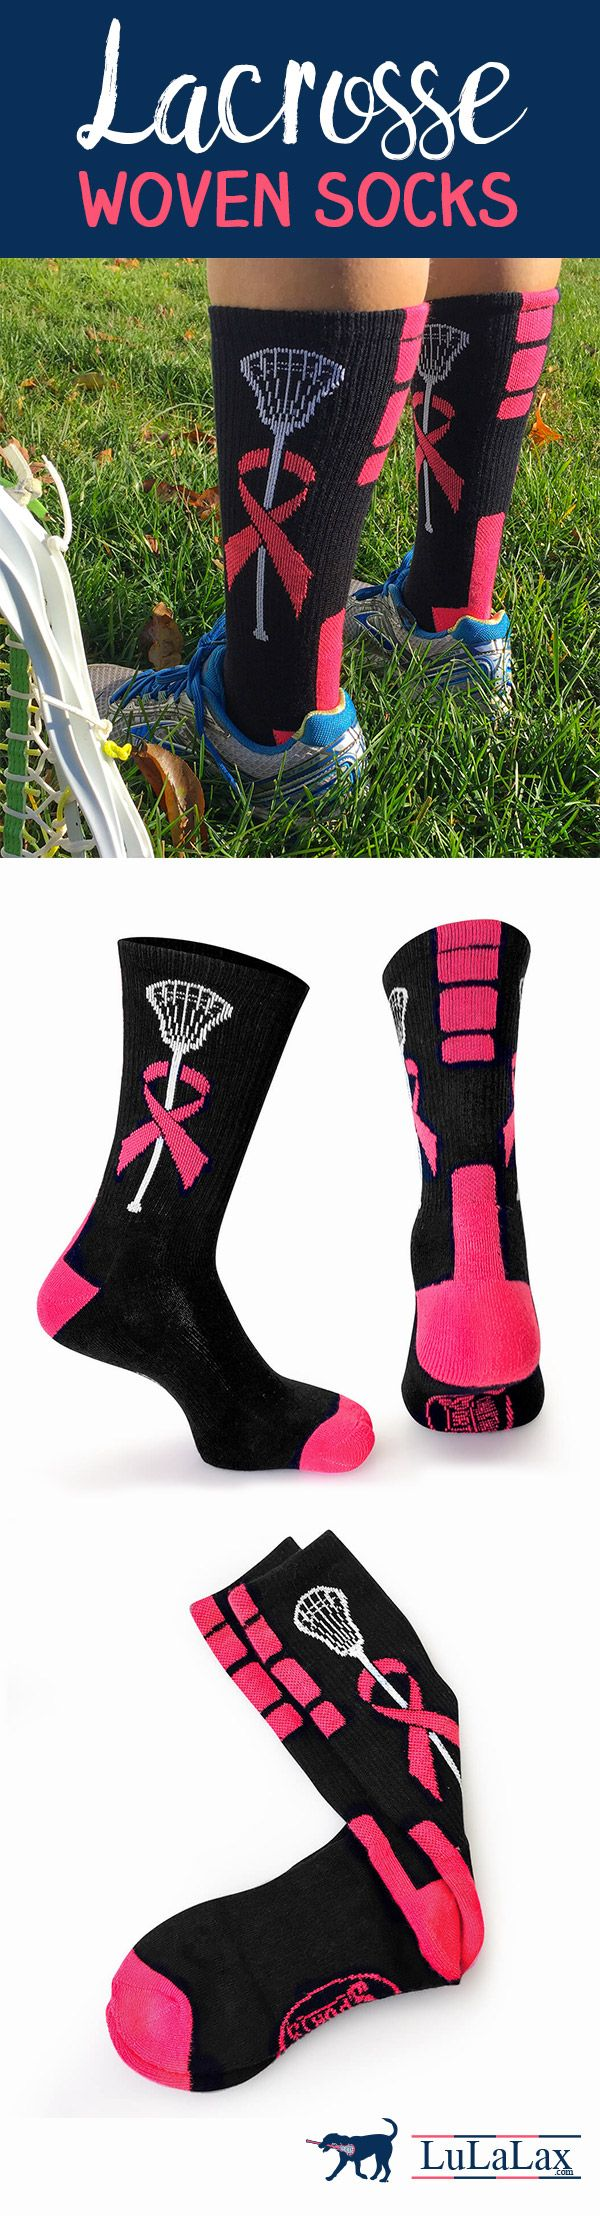 Show off your love of #lacrosse with our stylish woven socks that look and perform great, on and off the field!